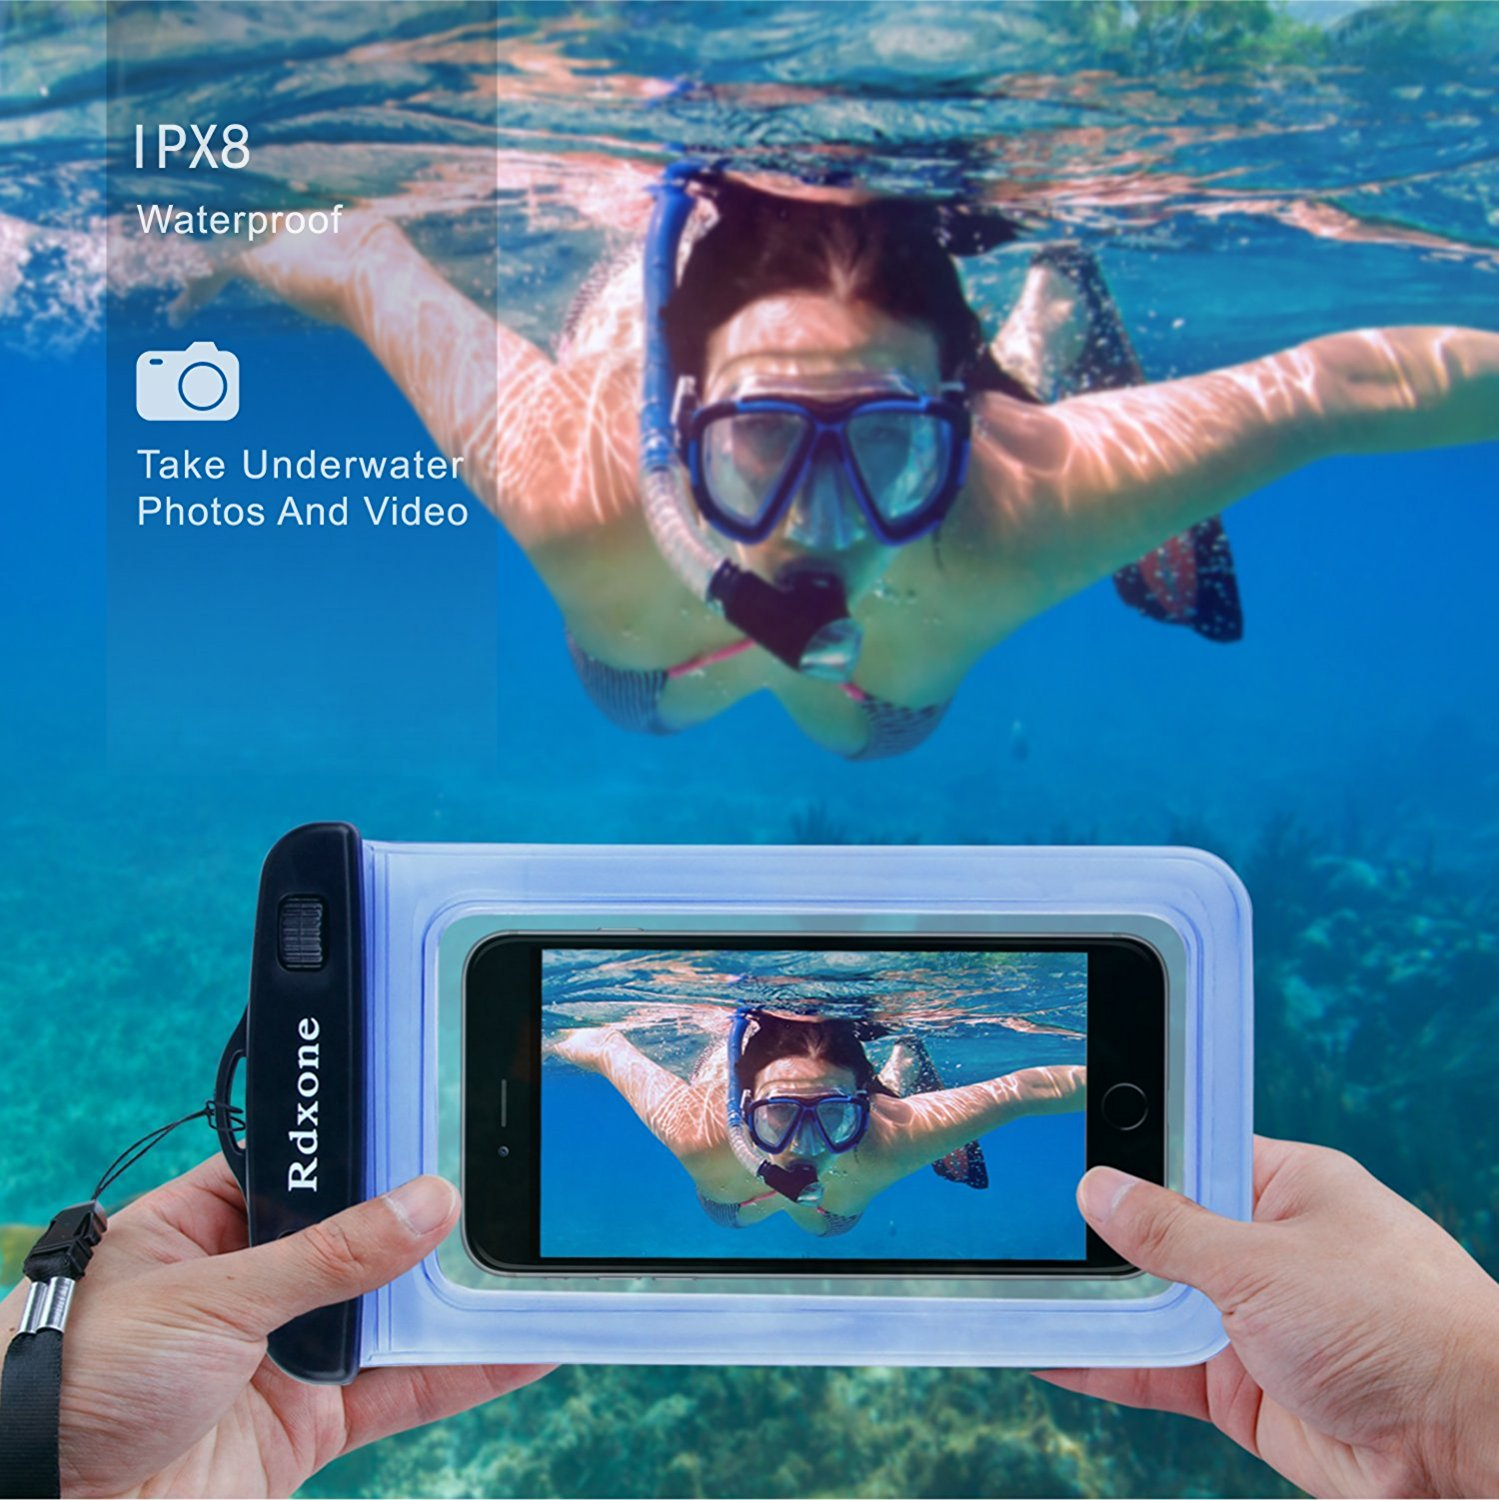 Best waterproof phone bag, universal waterproof phone case dry bag perfect for iPhone 7 plus, 7, 6s, 6s Plus, 6, 6 plus, Samsung Galaxy S8 S7 S6, Moto G5, LG, etc